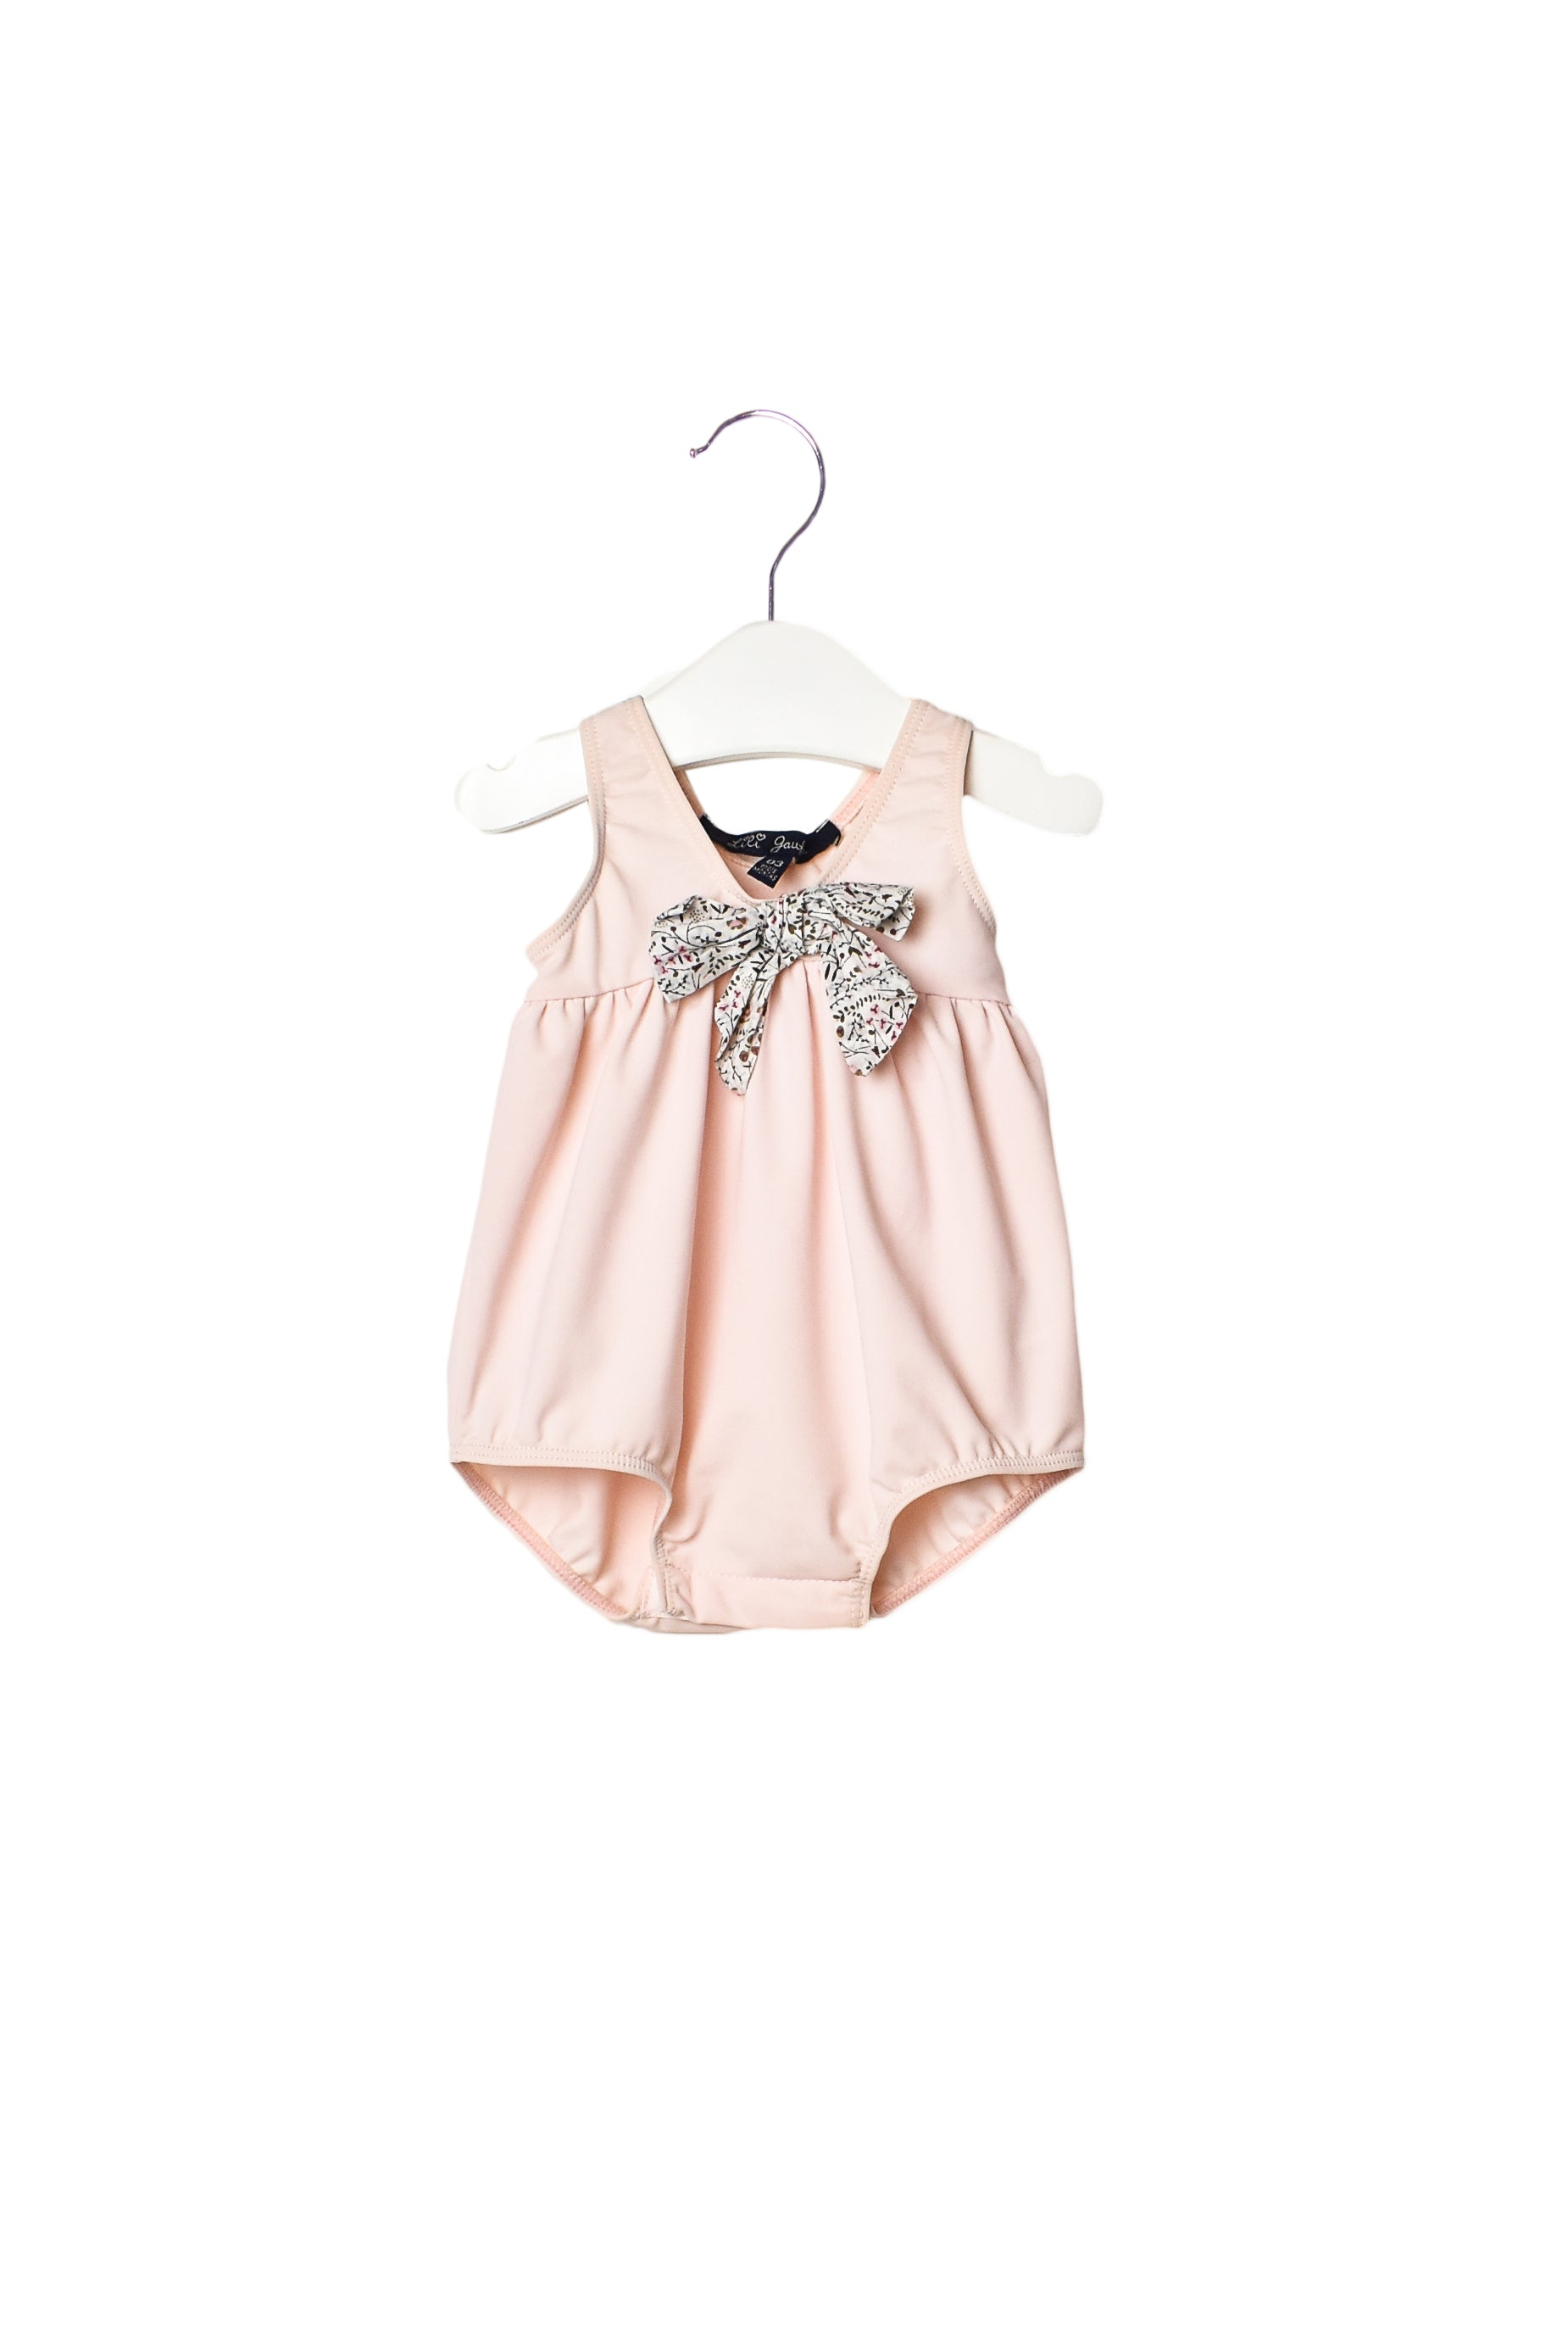 10007887 Lili Gaufrette Kids~ Swimwear 3M at Retykle